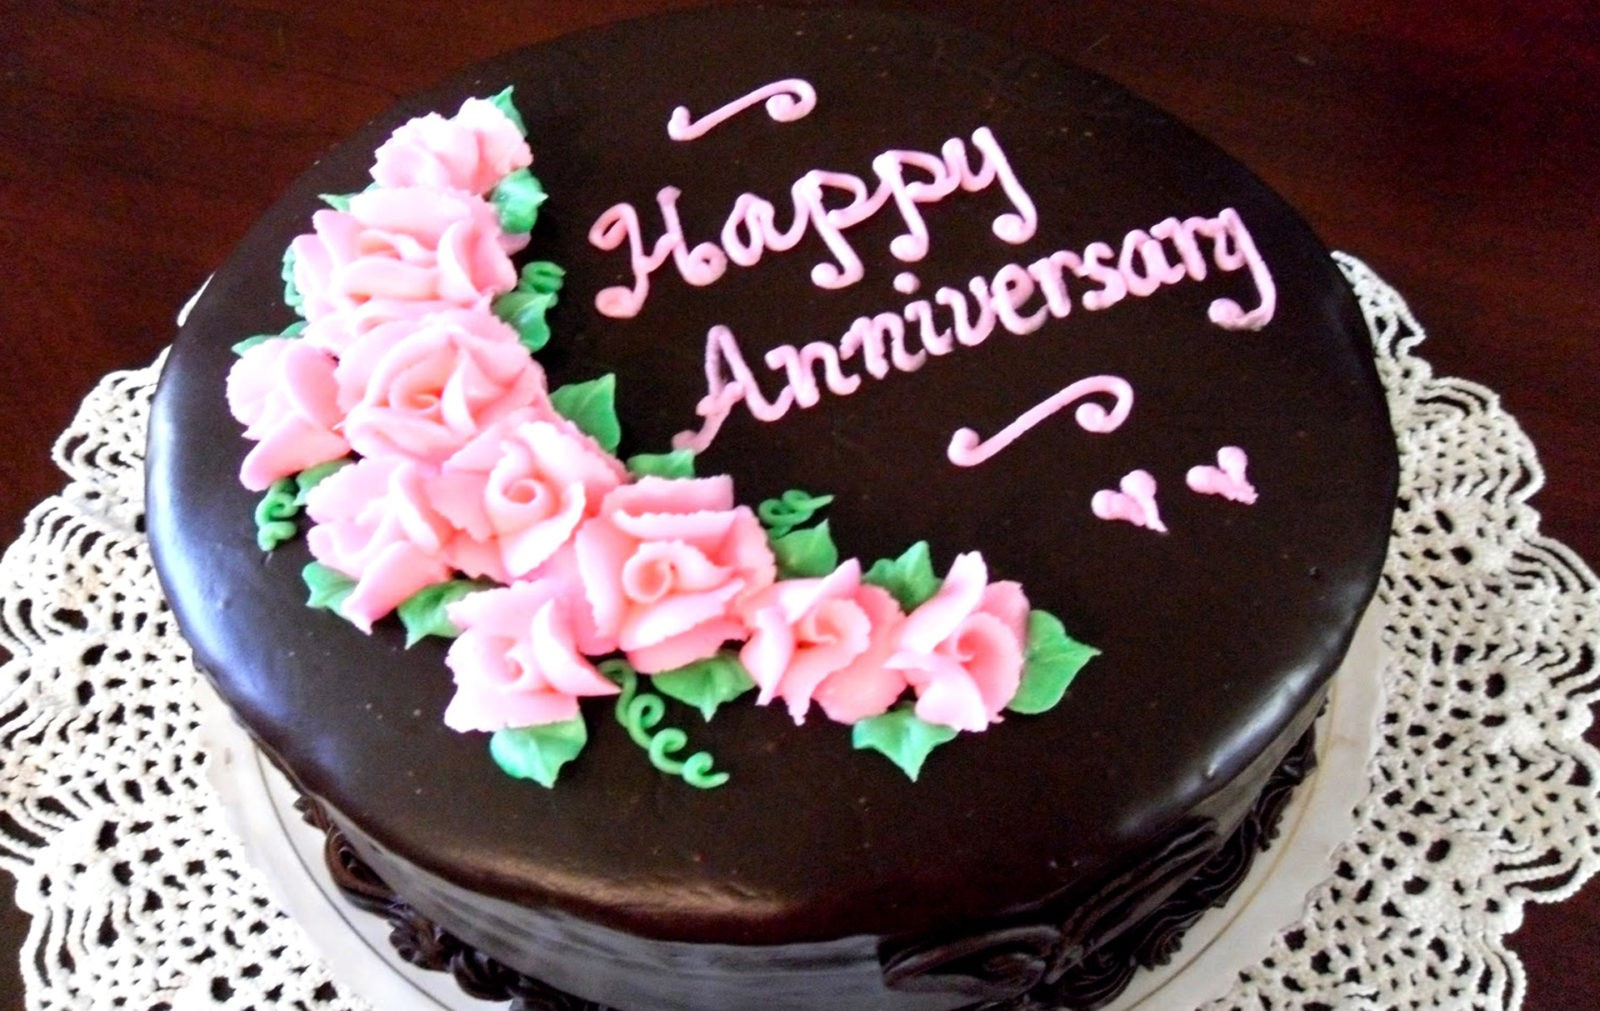 Marriage Anniversary Cake Love Wishes Images